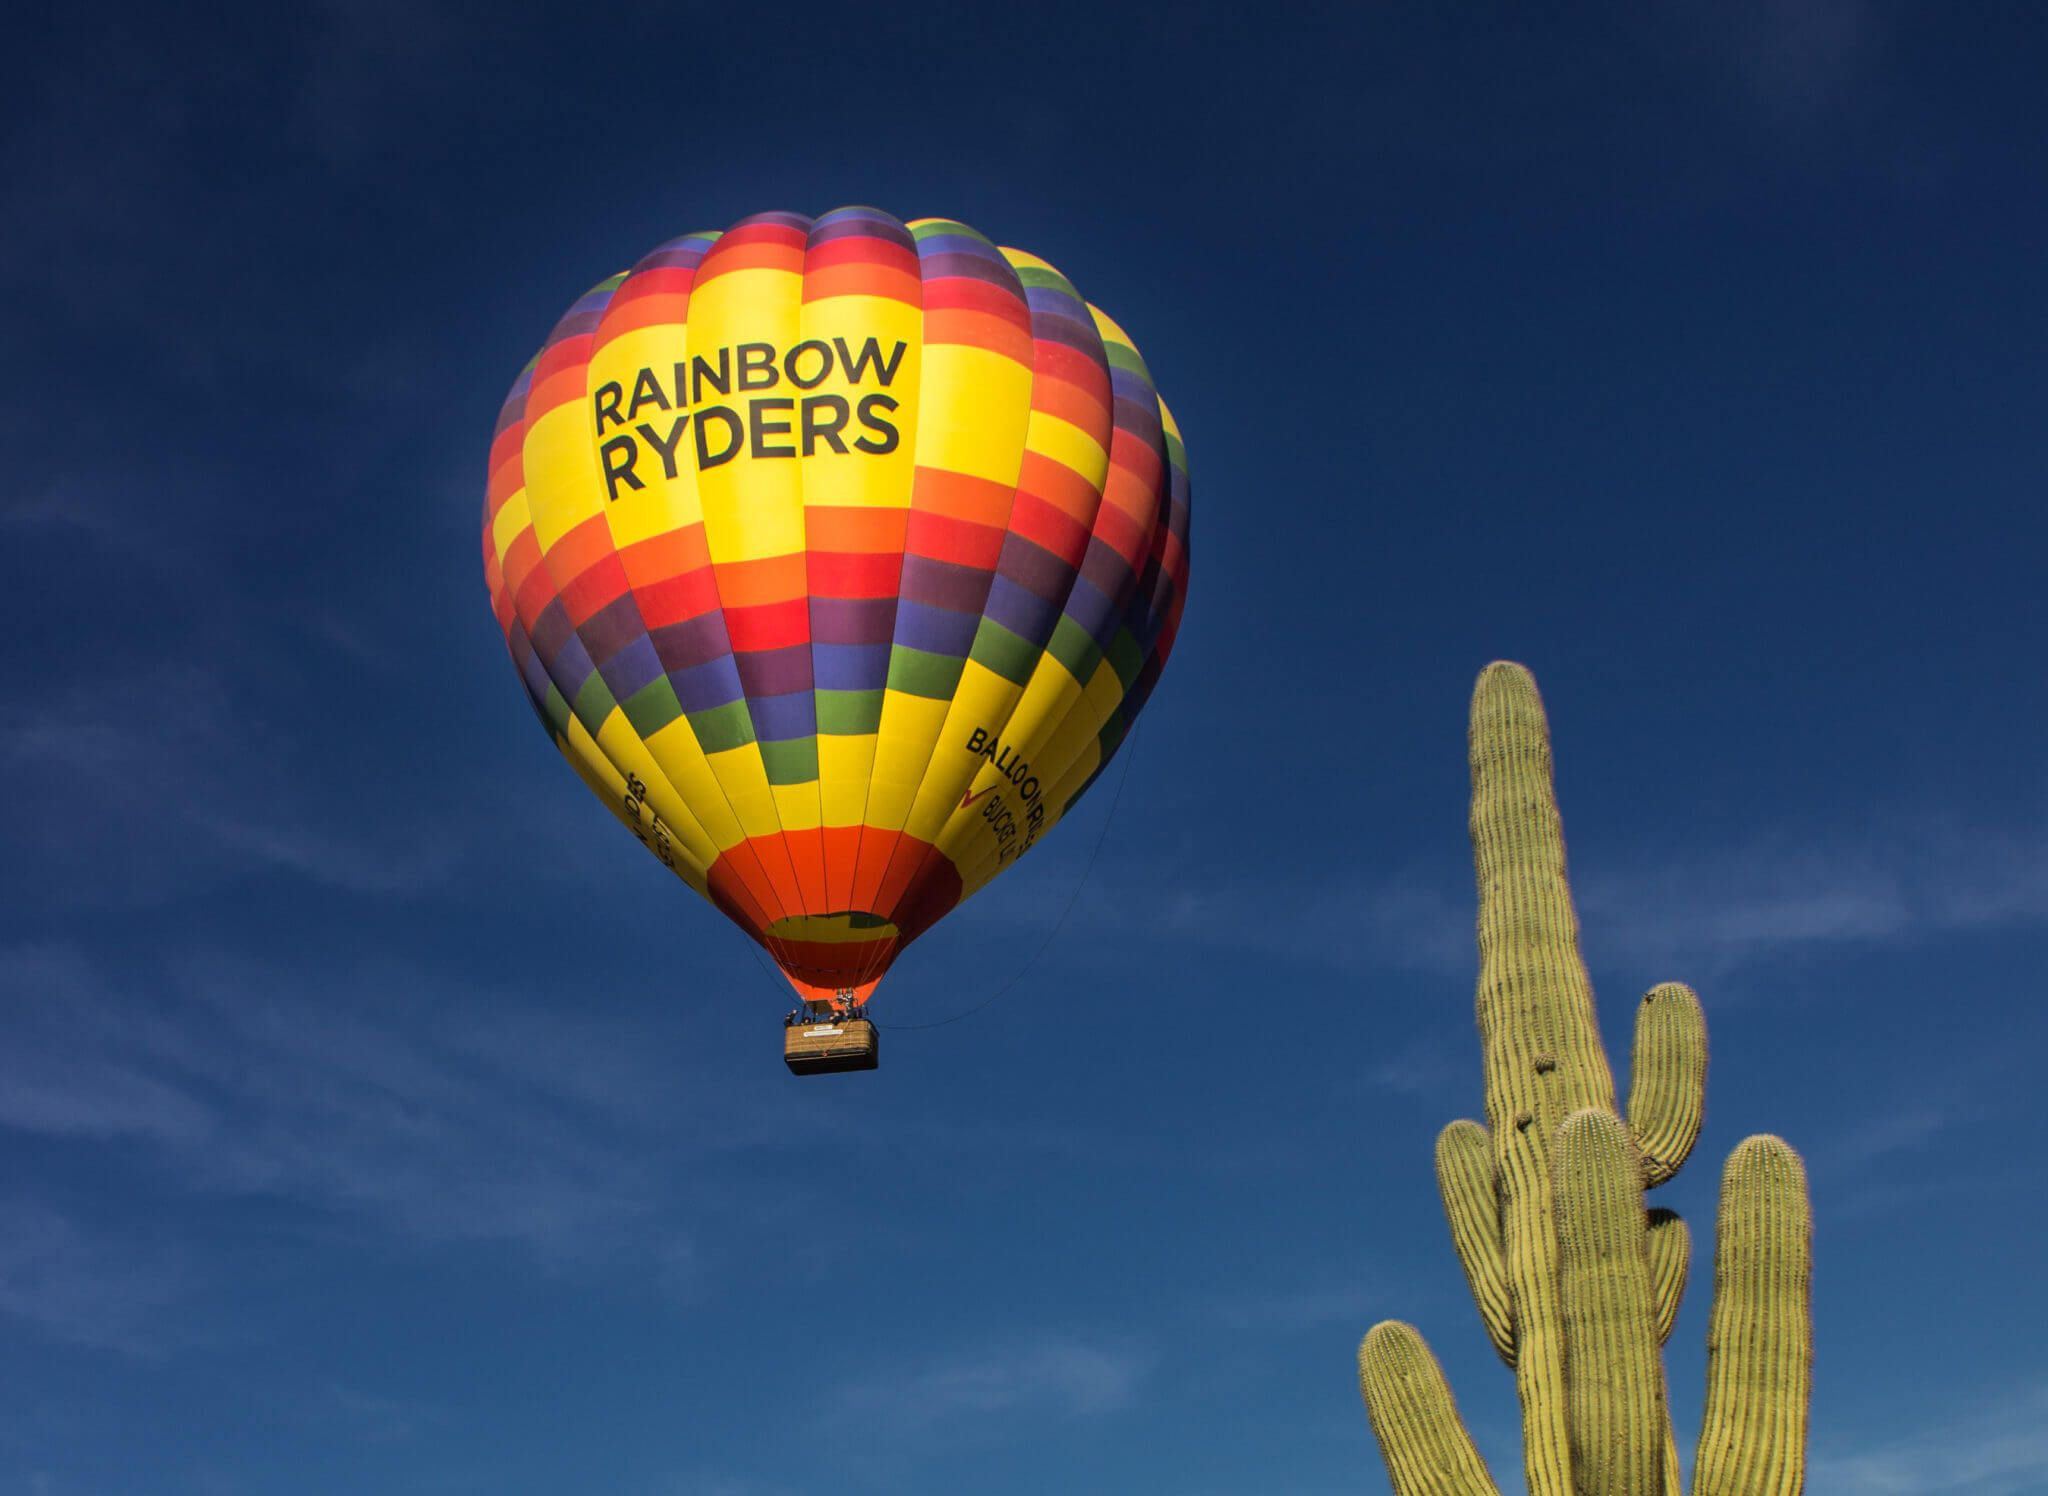 Take a memorable hot air balloon ride in Phoenix and let